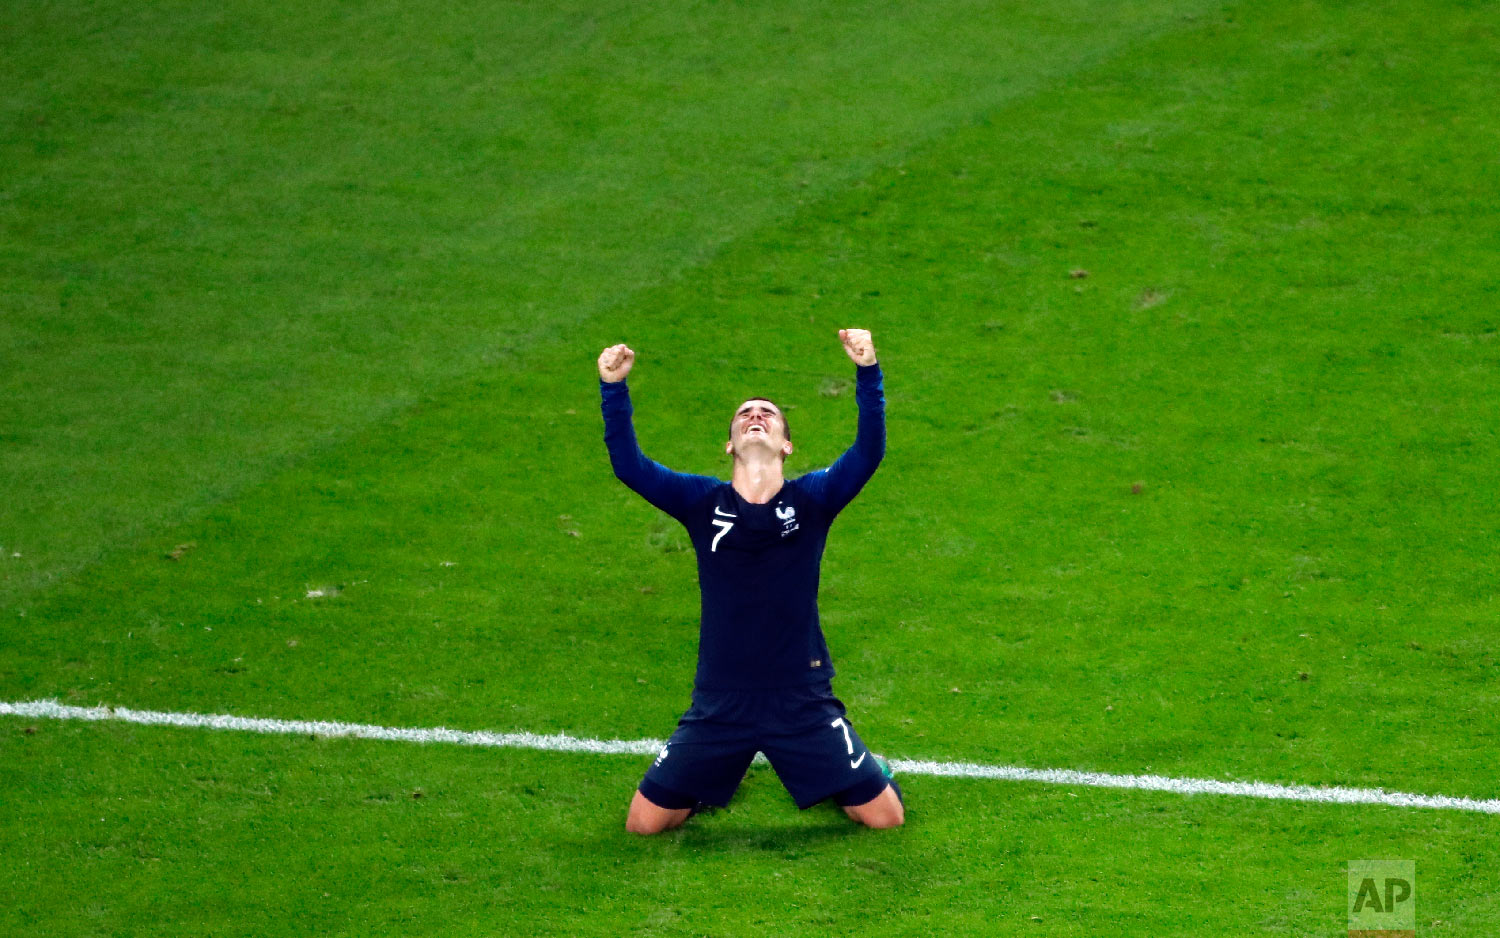 France's Antoine Griezmann celebrates at the end of the semifinal match between France and Belgium at the 2018 soccer World Cup in the St. Petersburg Stadium in St. Petersburg, Russia, Tuesday, July 10, 2018. (AP Photo/Pavel Golovkin)